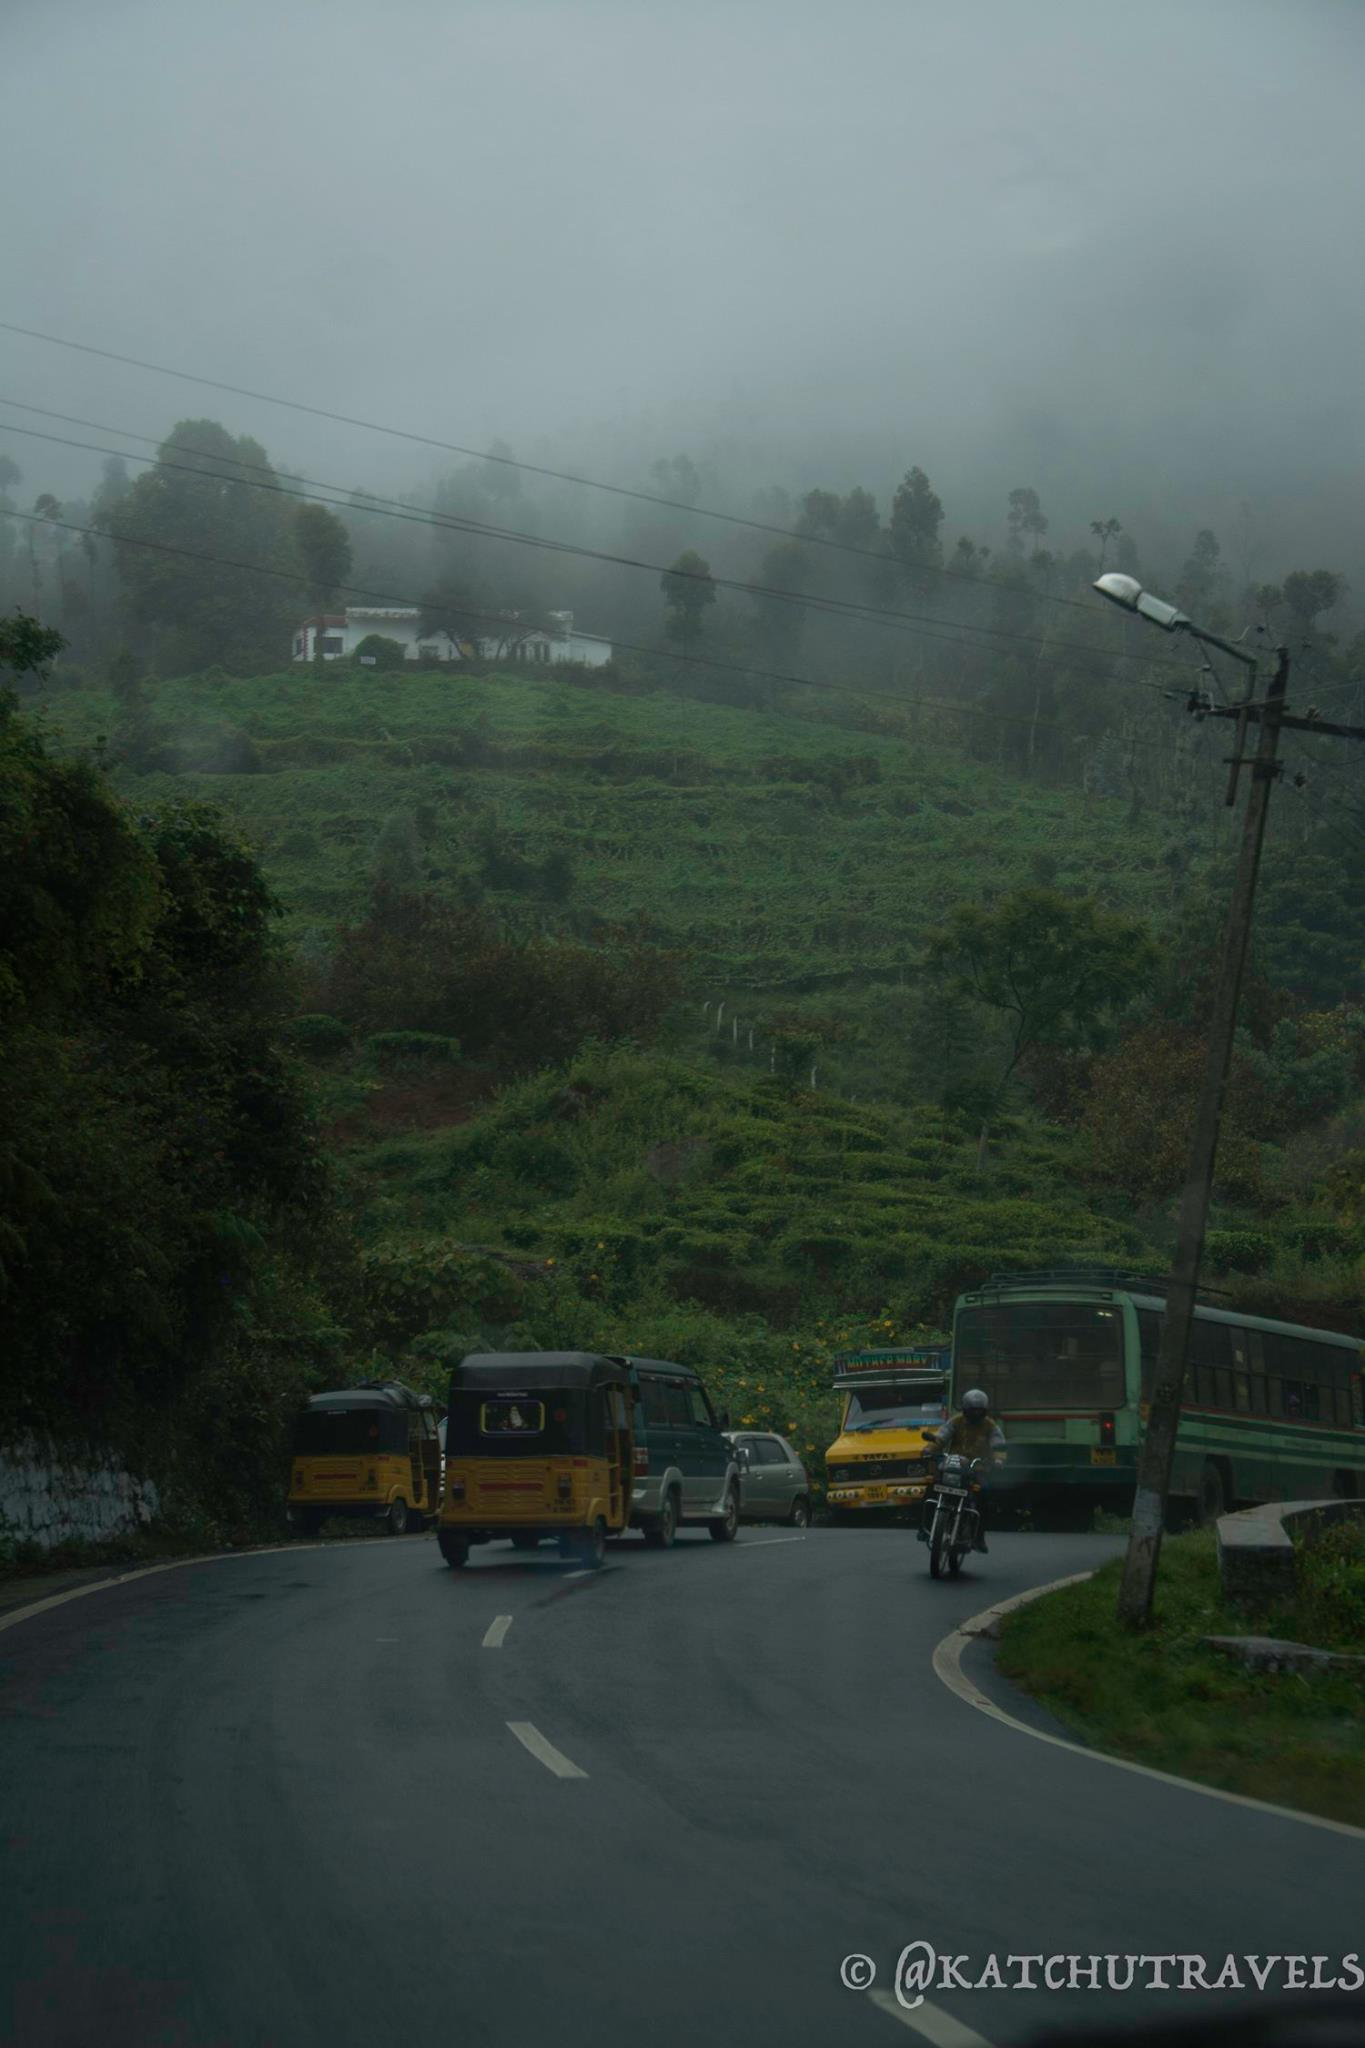 Misty Morning in Coonoor